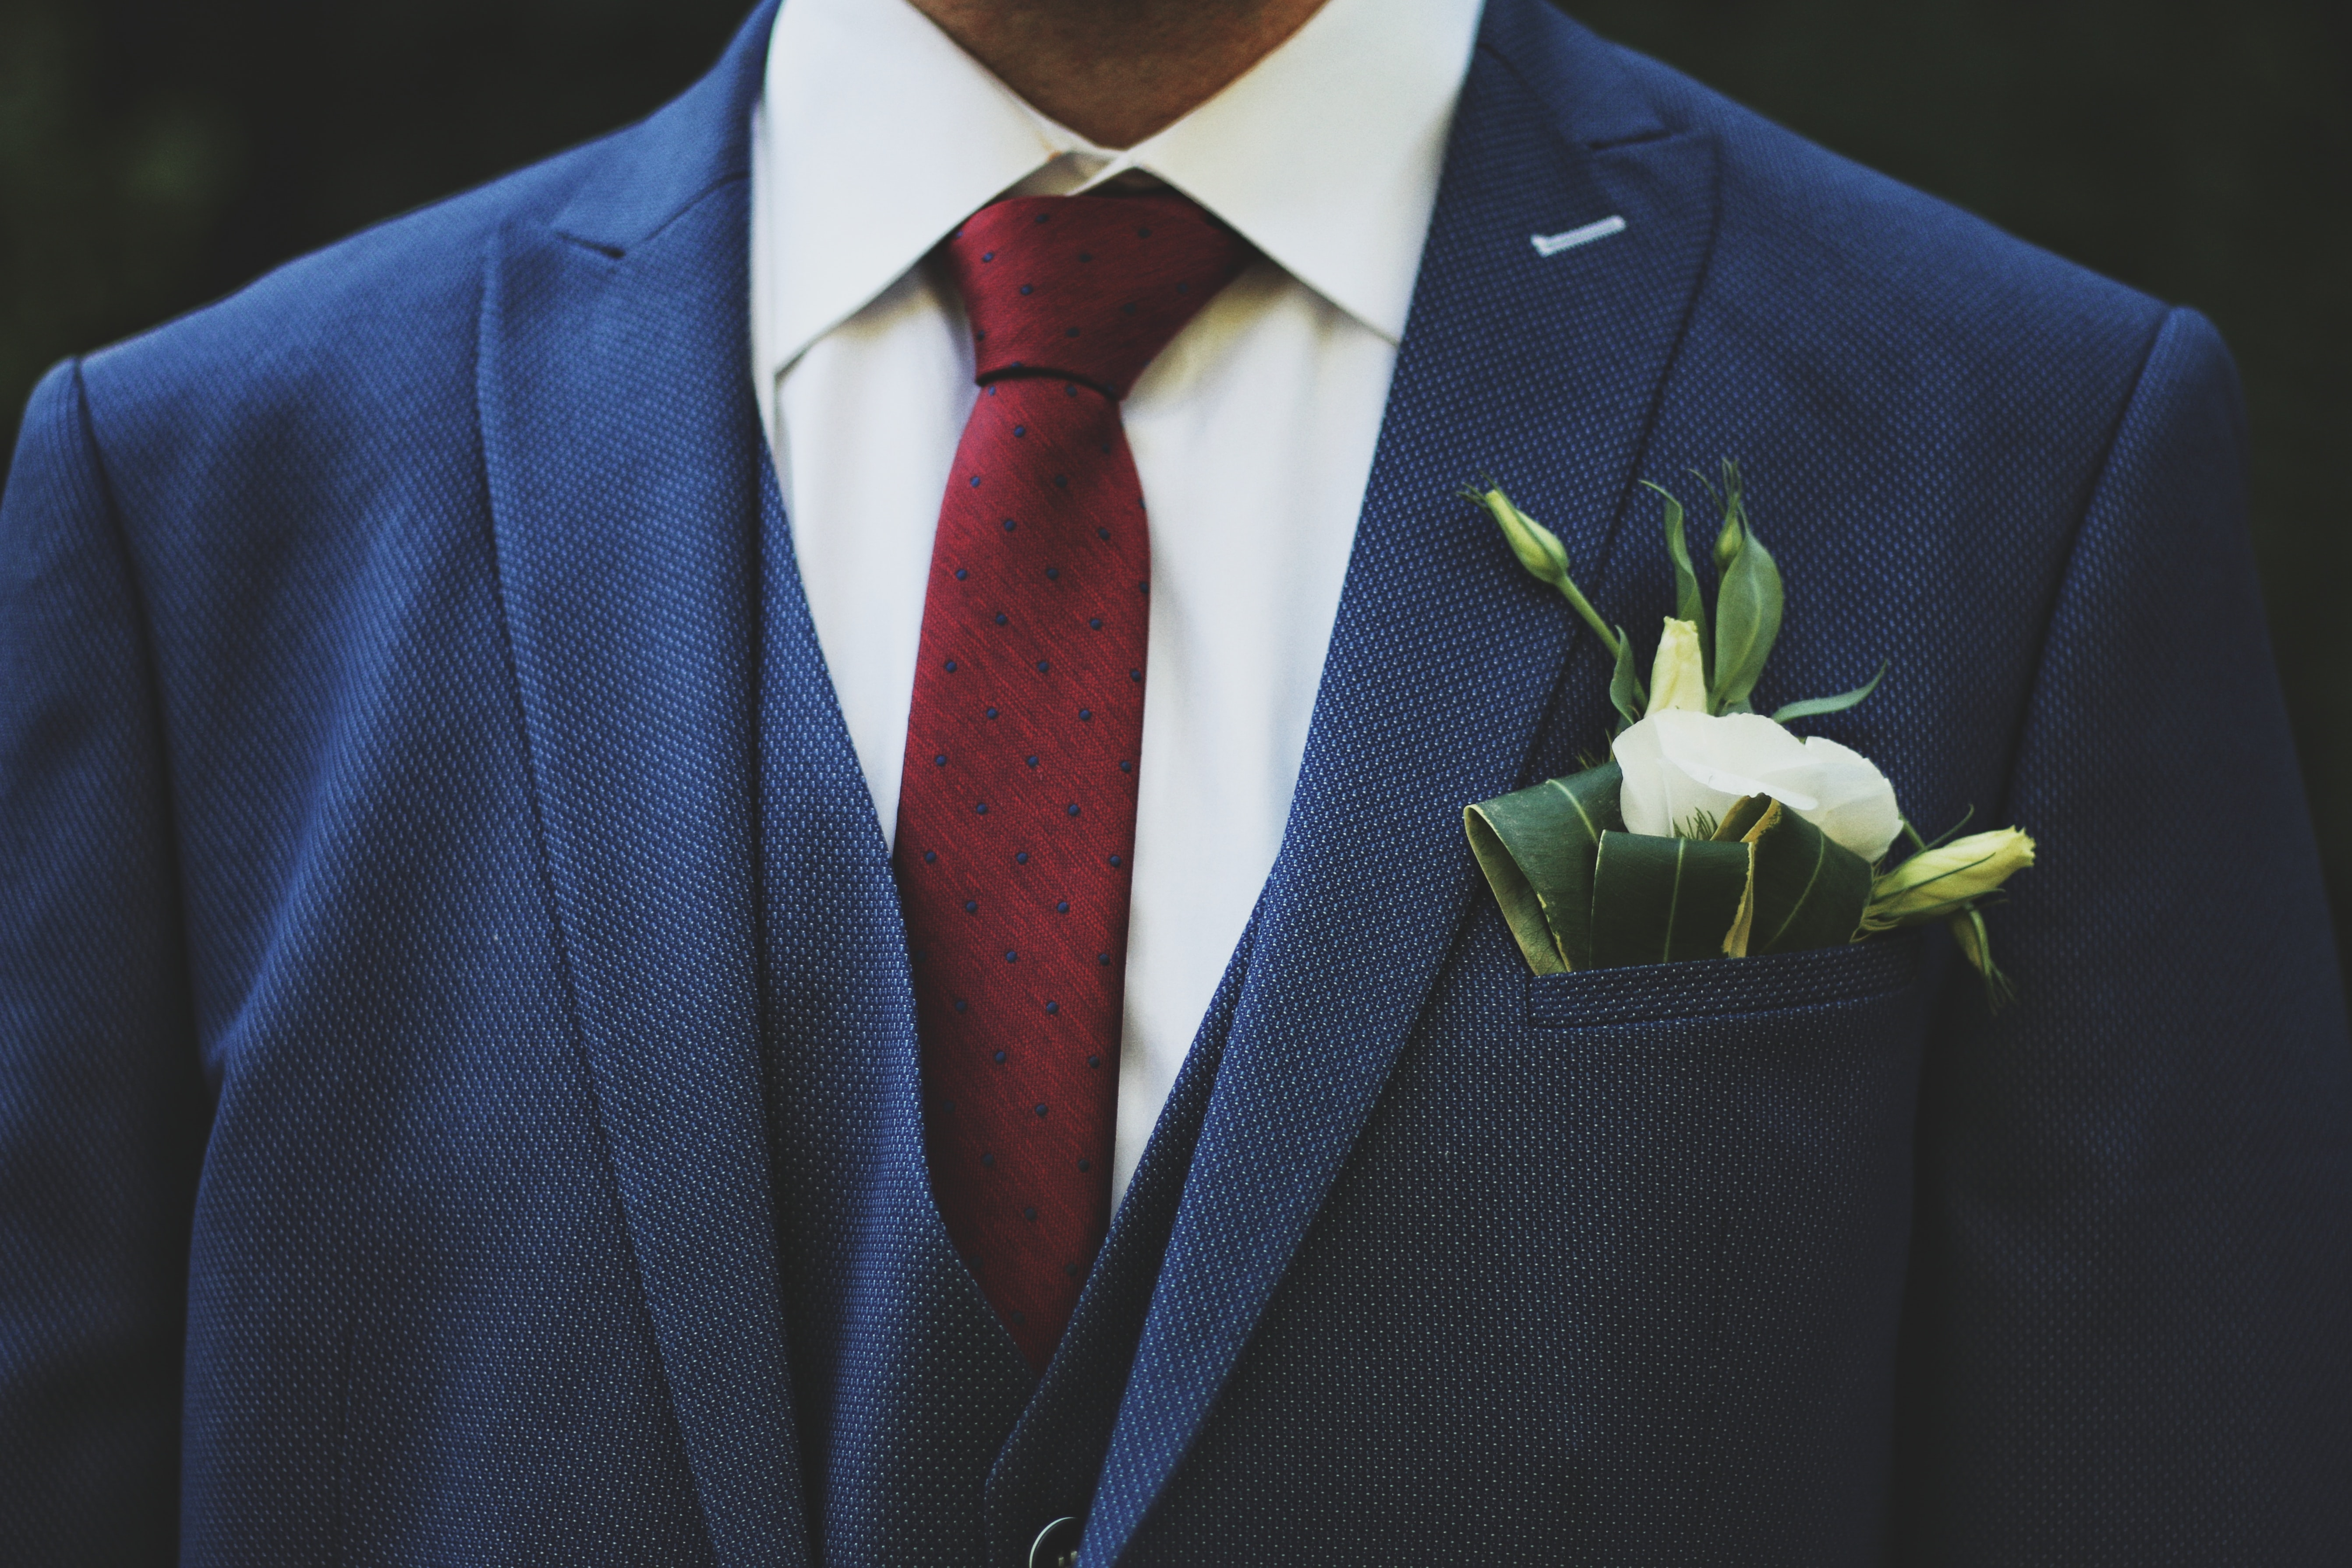 person wearing blue suit jacket and red necktie